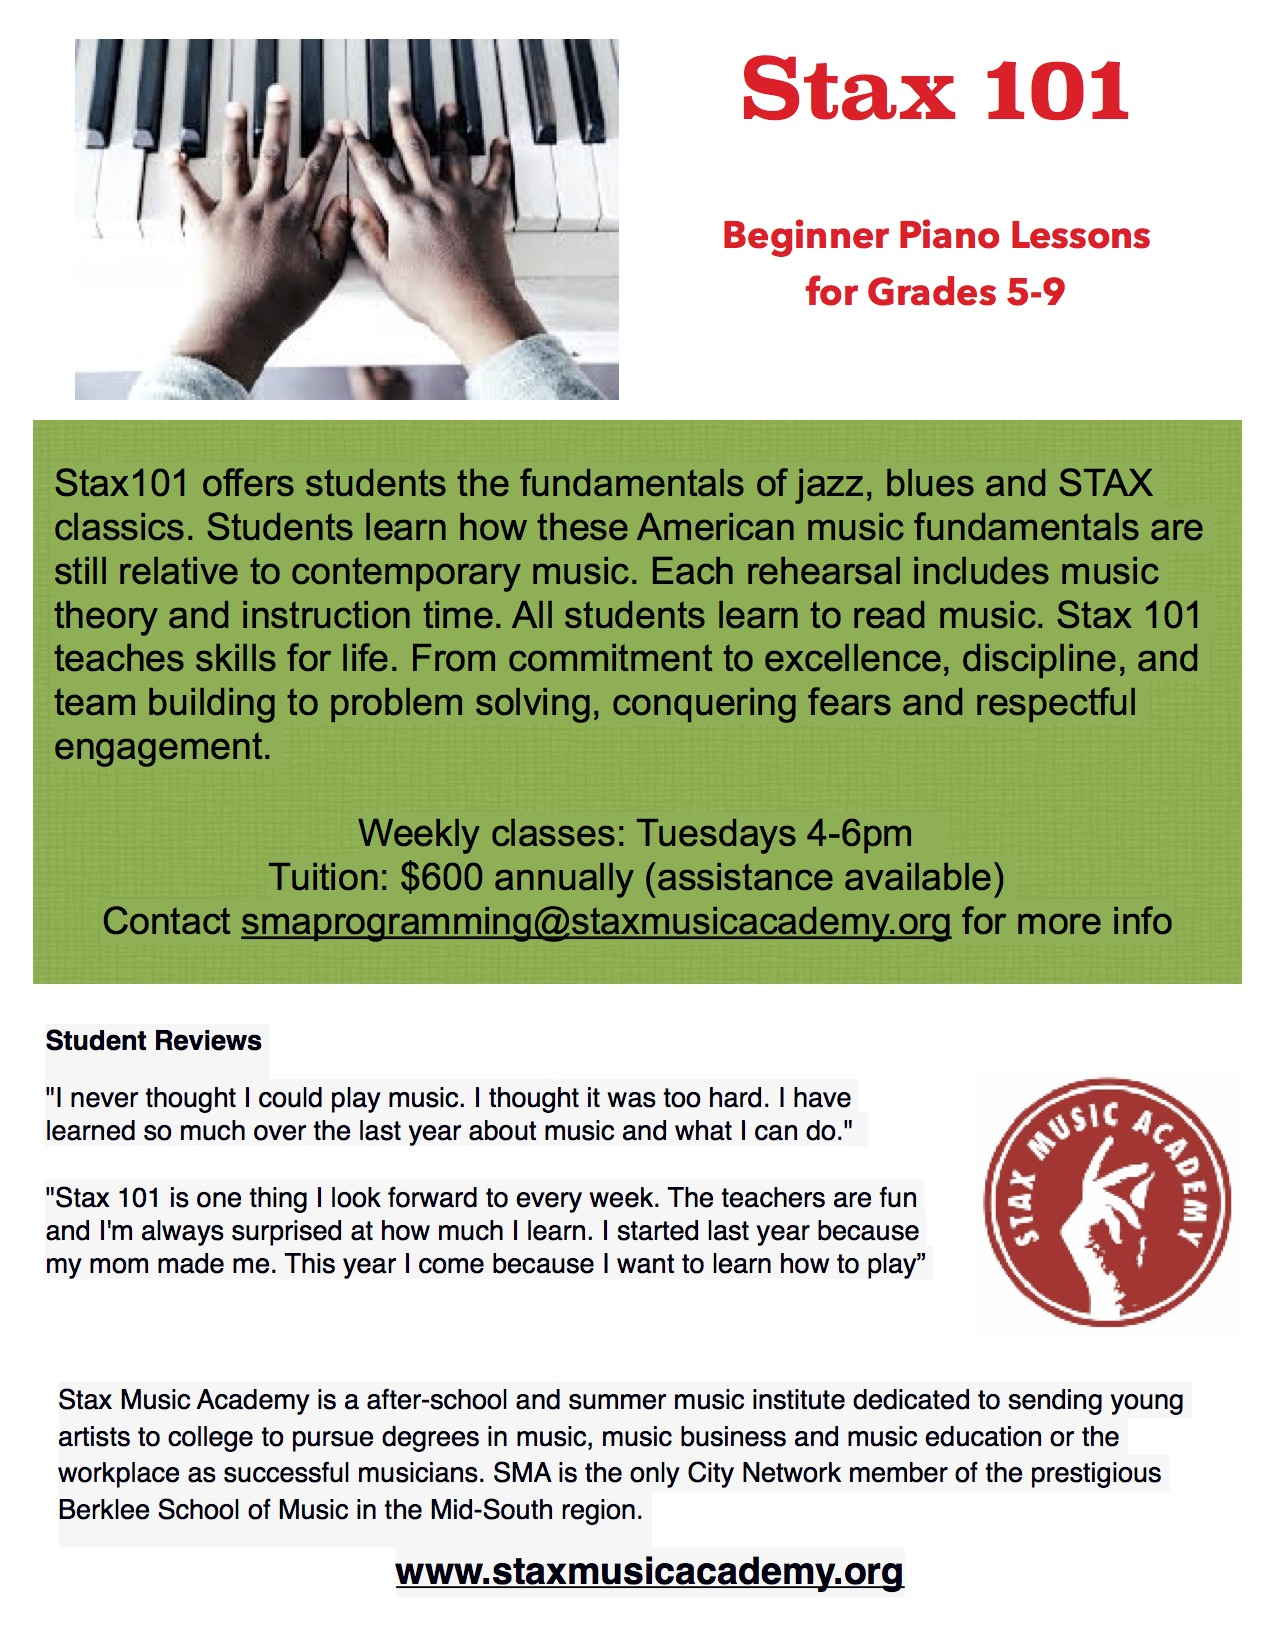 Piano Lessons for Beginners Now Accepting Applications - Stax Music